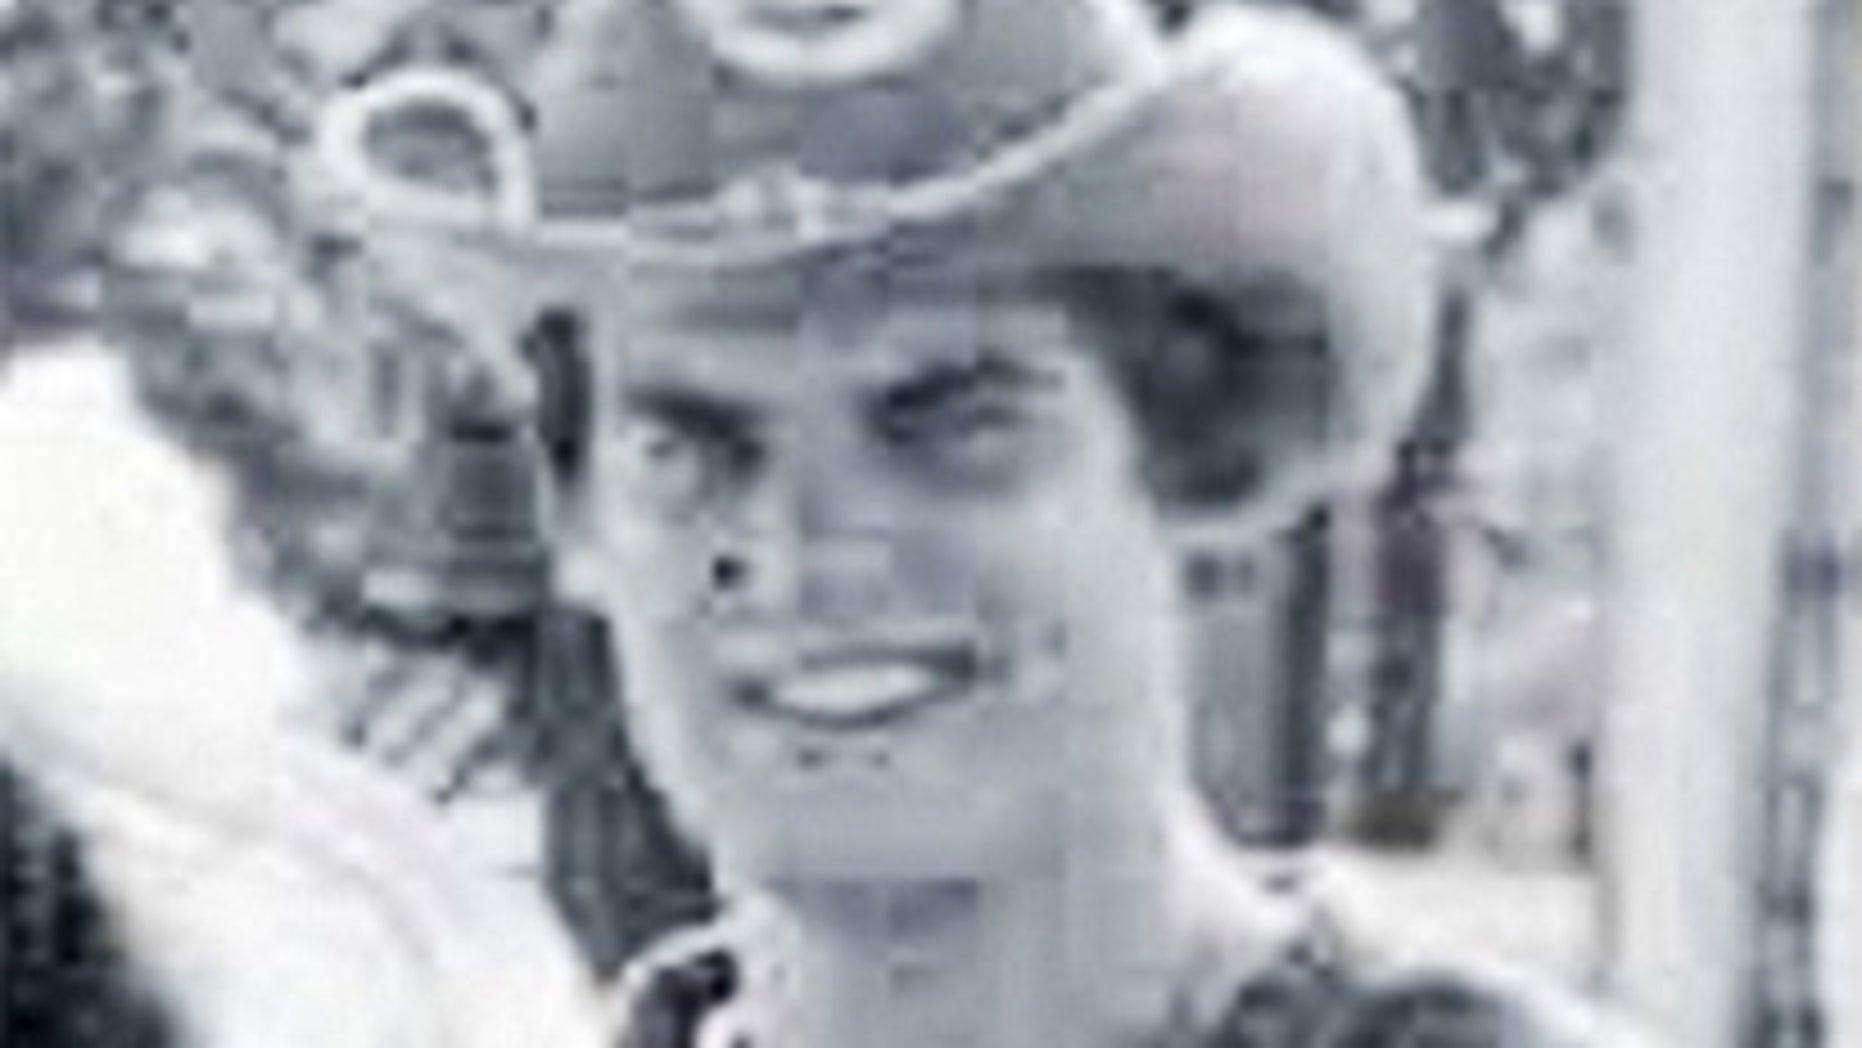 In this 1980 Auburn University yearbook photo, released by the office of Tennessee Gov. Bill Lee, Lee is pictured in a Confederate states costume while attending the university.